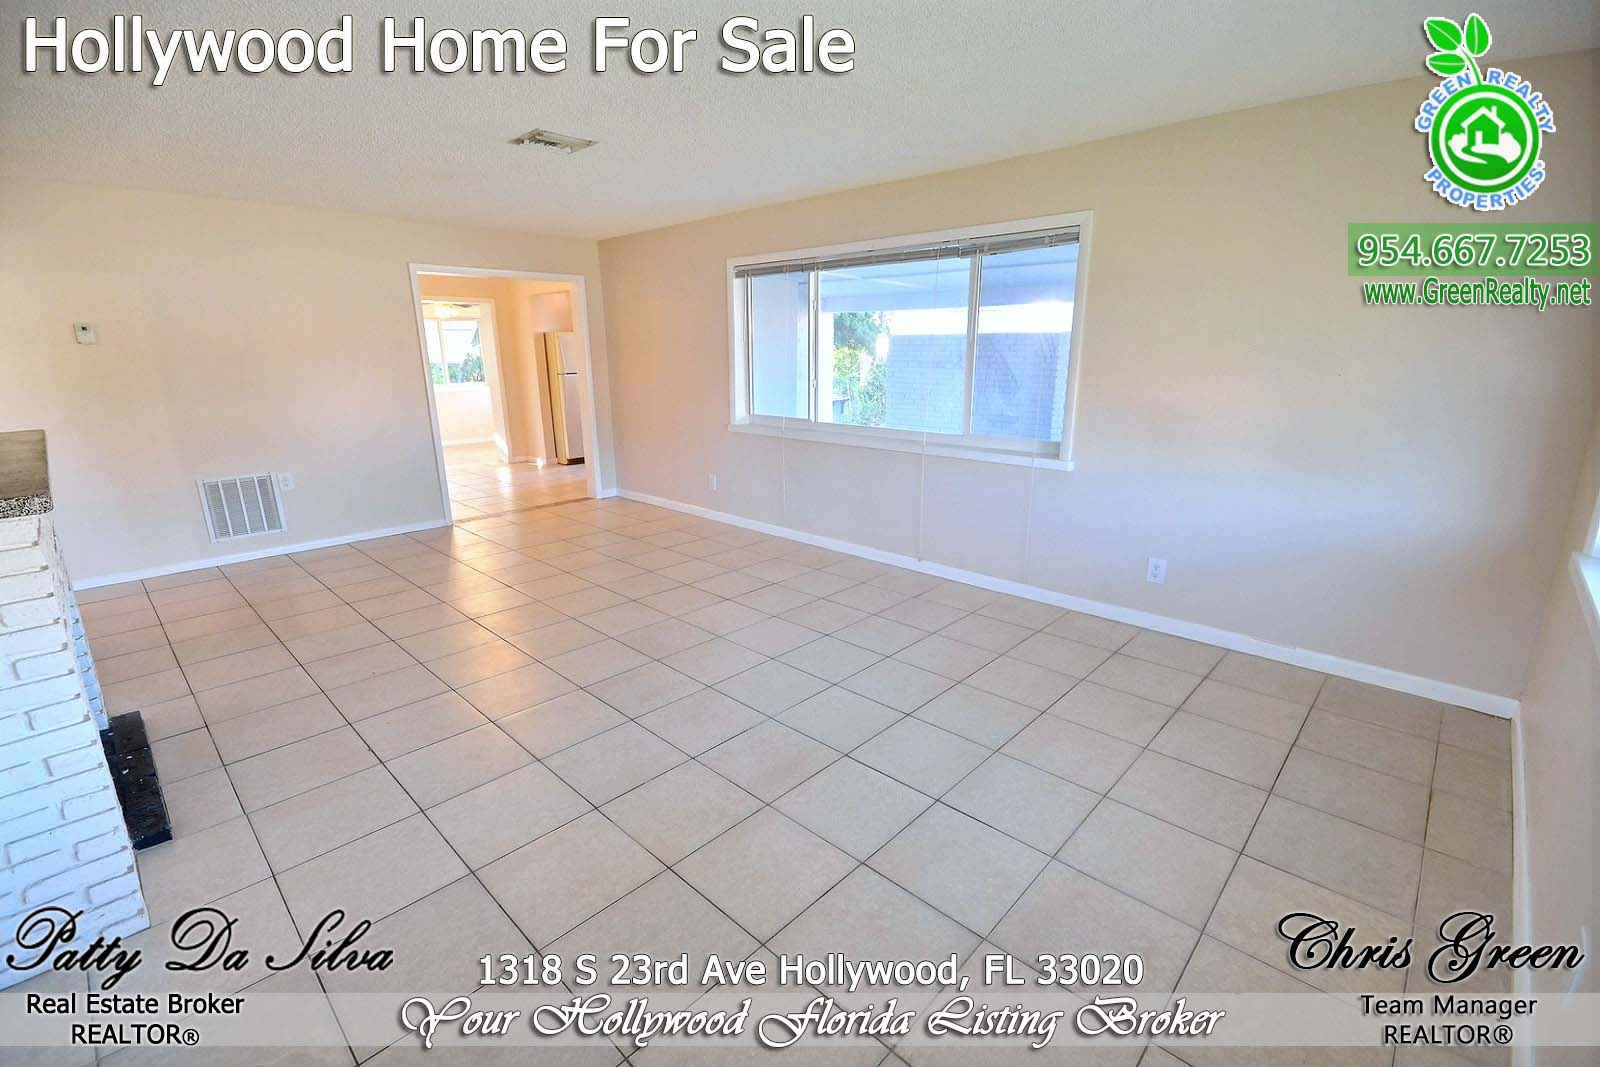 Homes for Sale in Hollywood Florida (2)